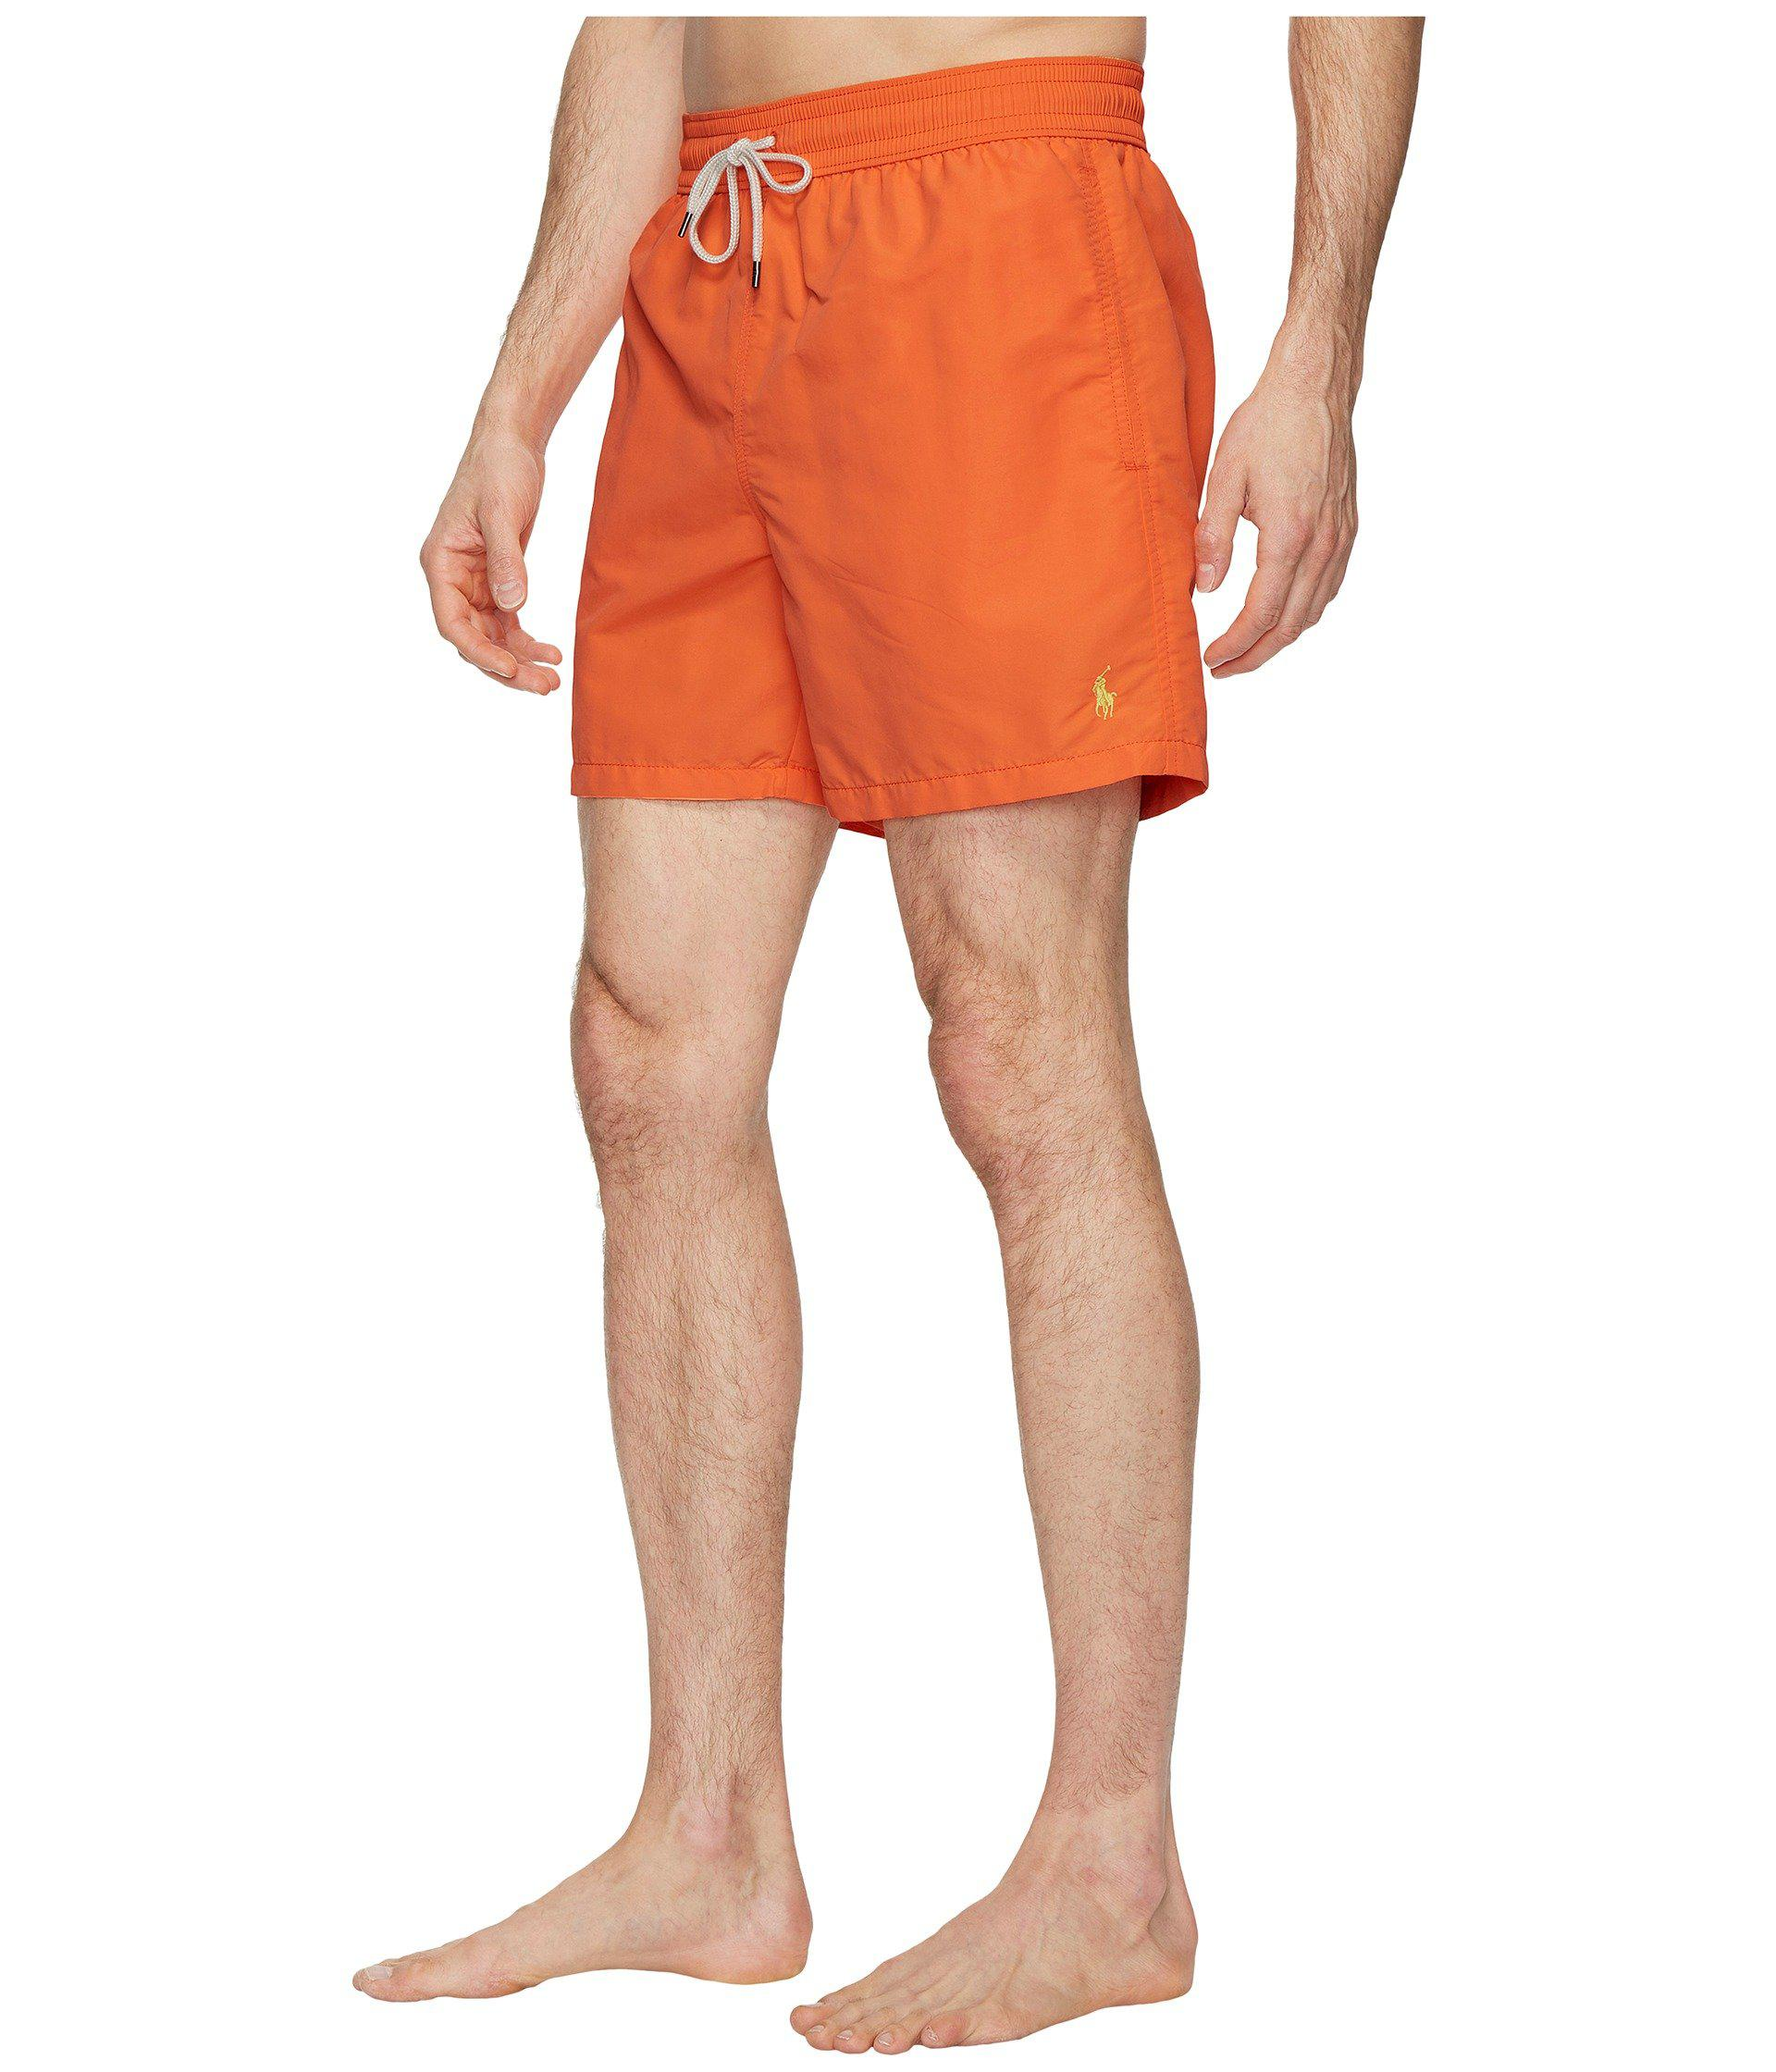 20b130adca ... cheap lyst polo ralph lauren nylon traveler swim shorts cactus flower mens  swimwear in orange for